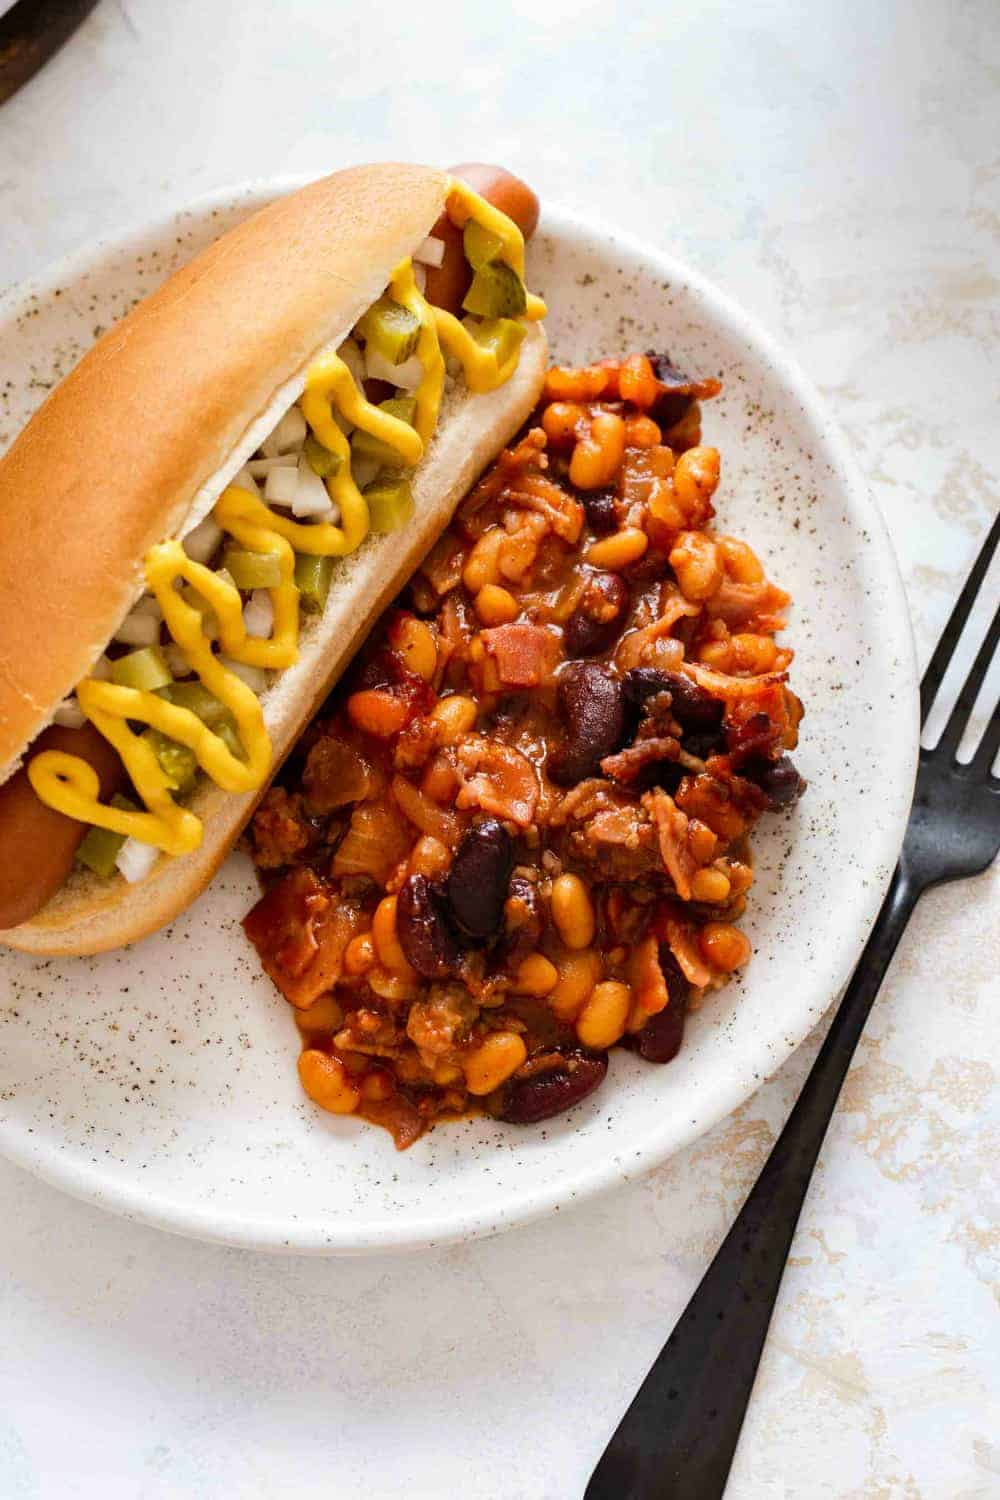 Close up of a plate with old fashioned baked beans and a hot dog